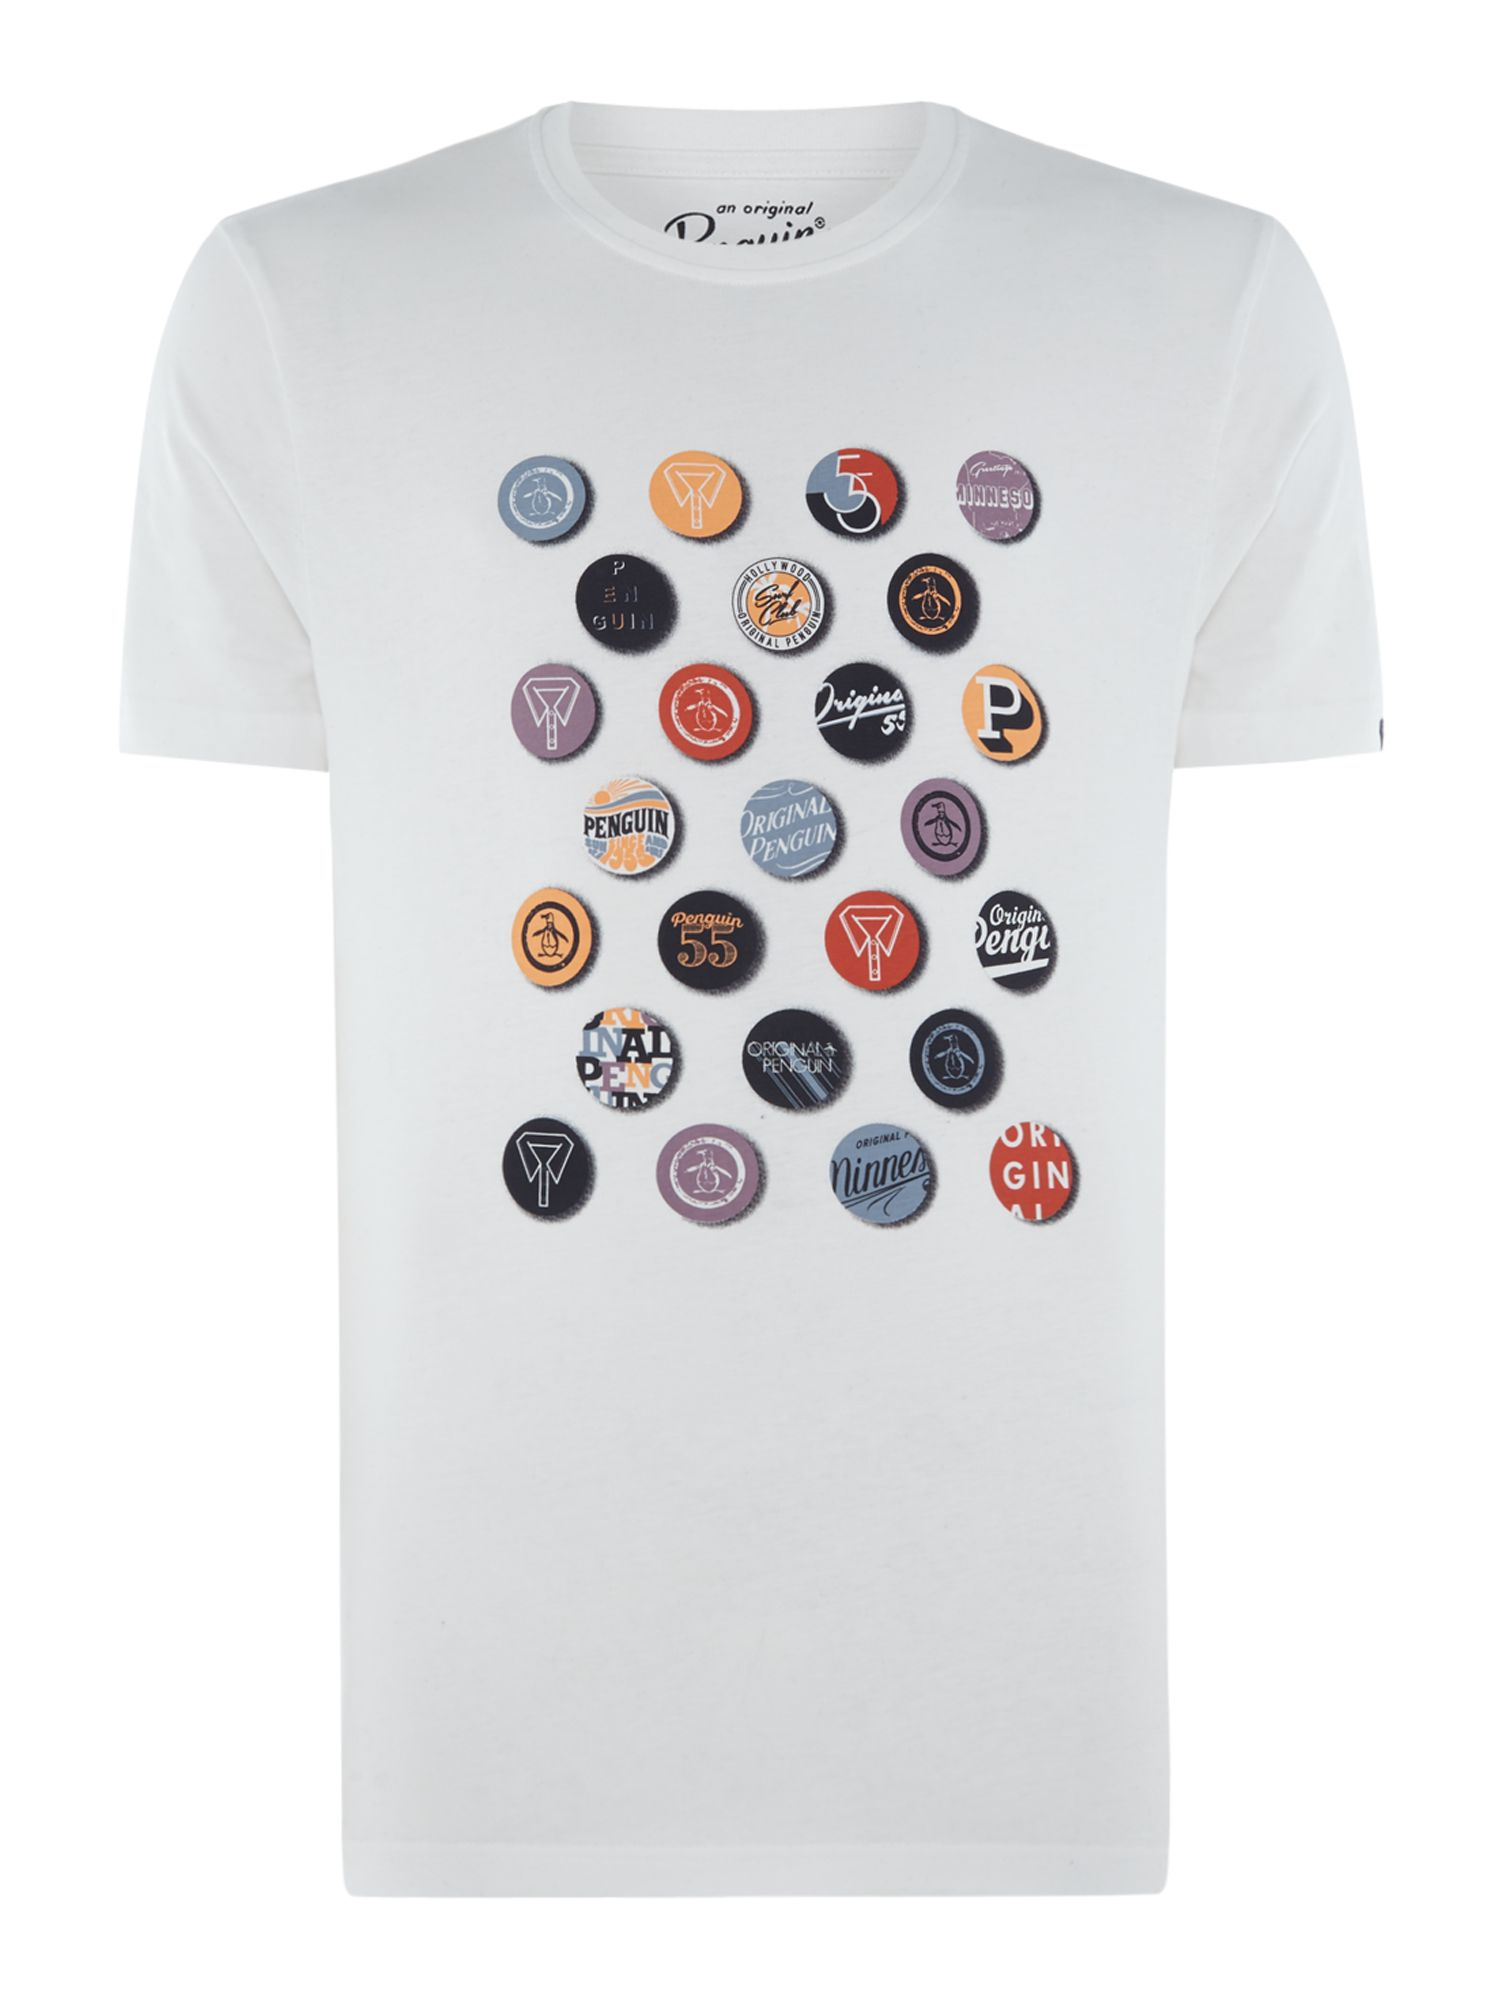 Men's Original Penguin Badges Print Crew Neck T-Shirt, White